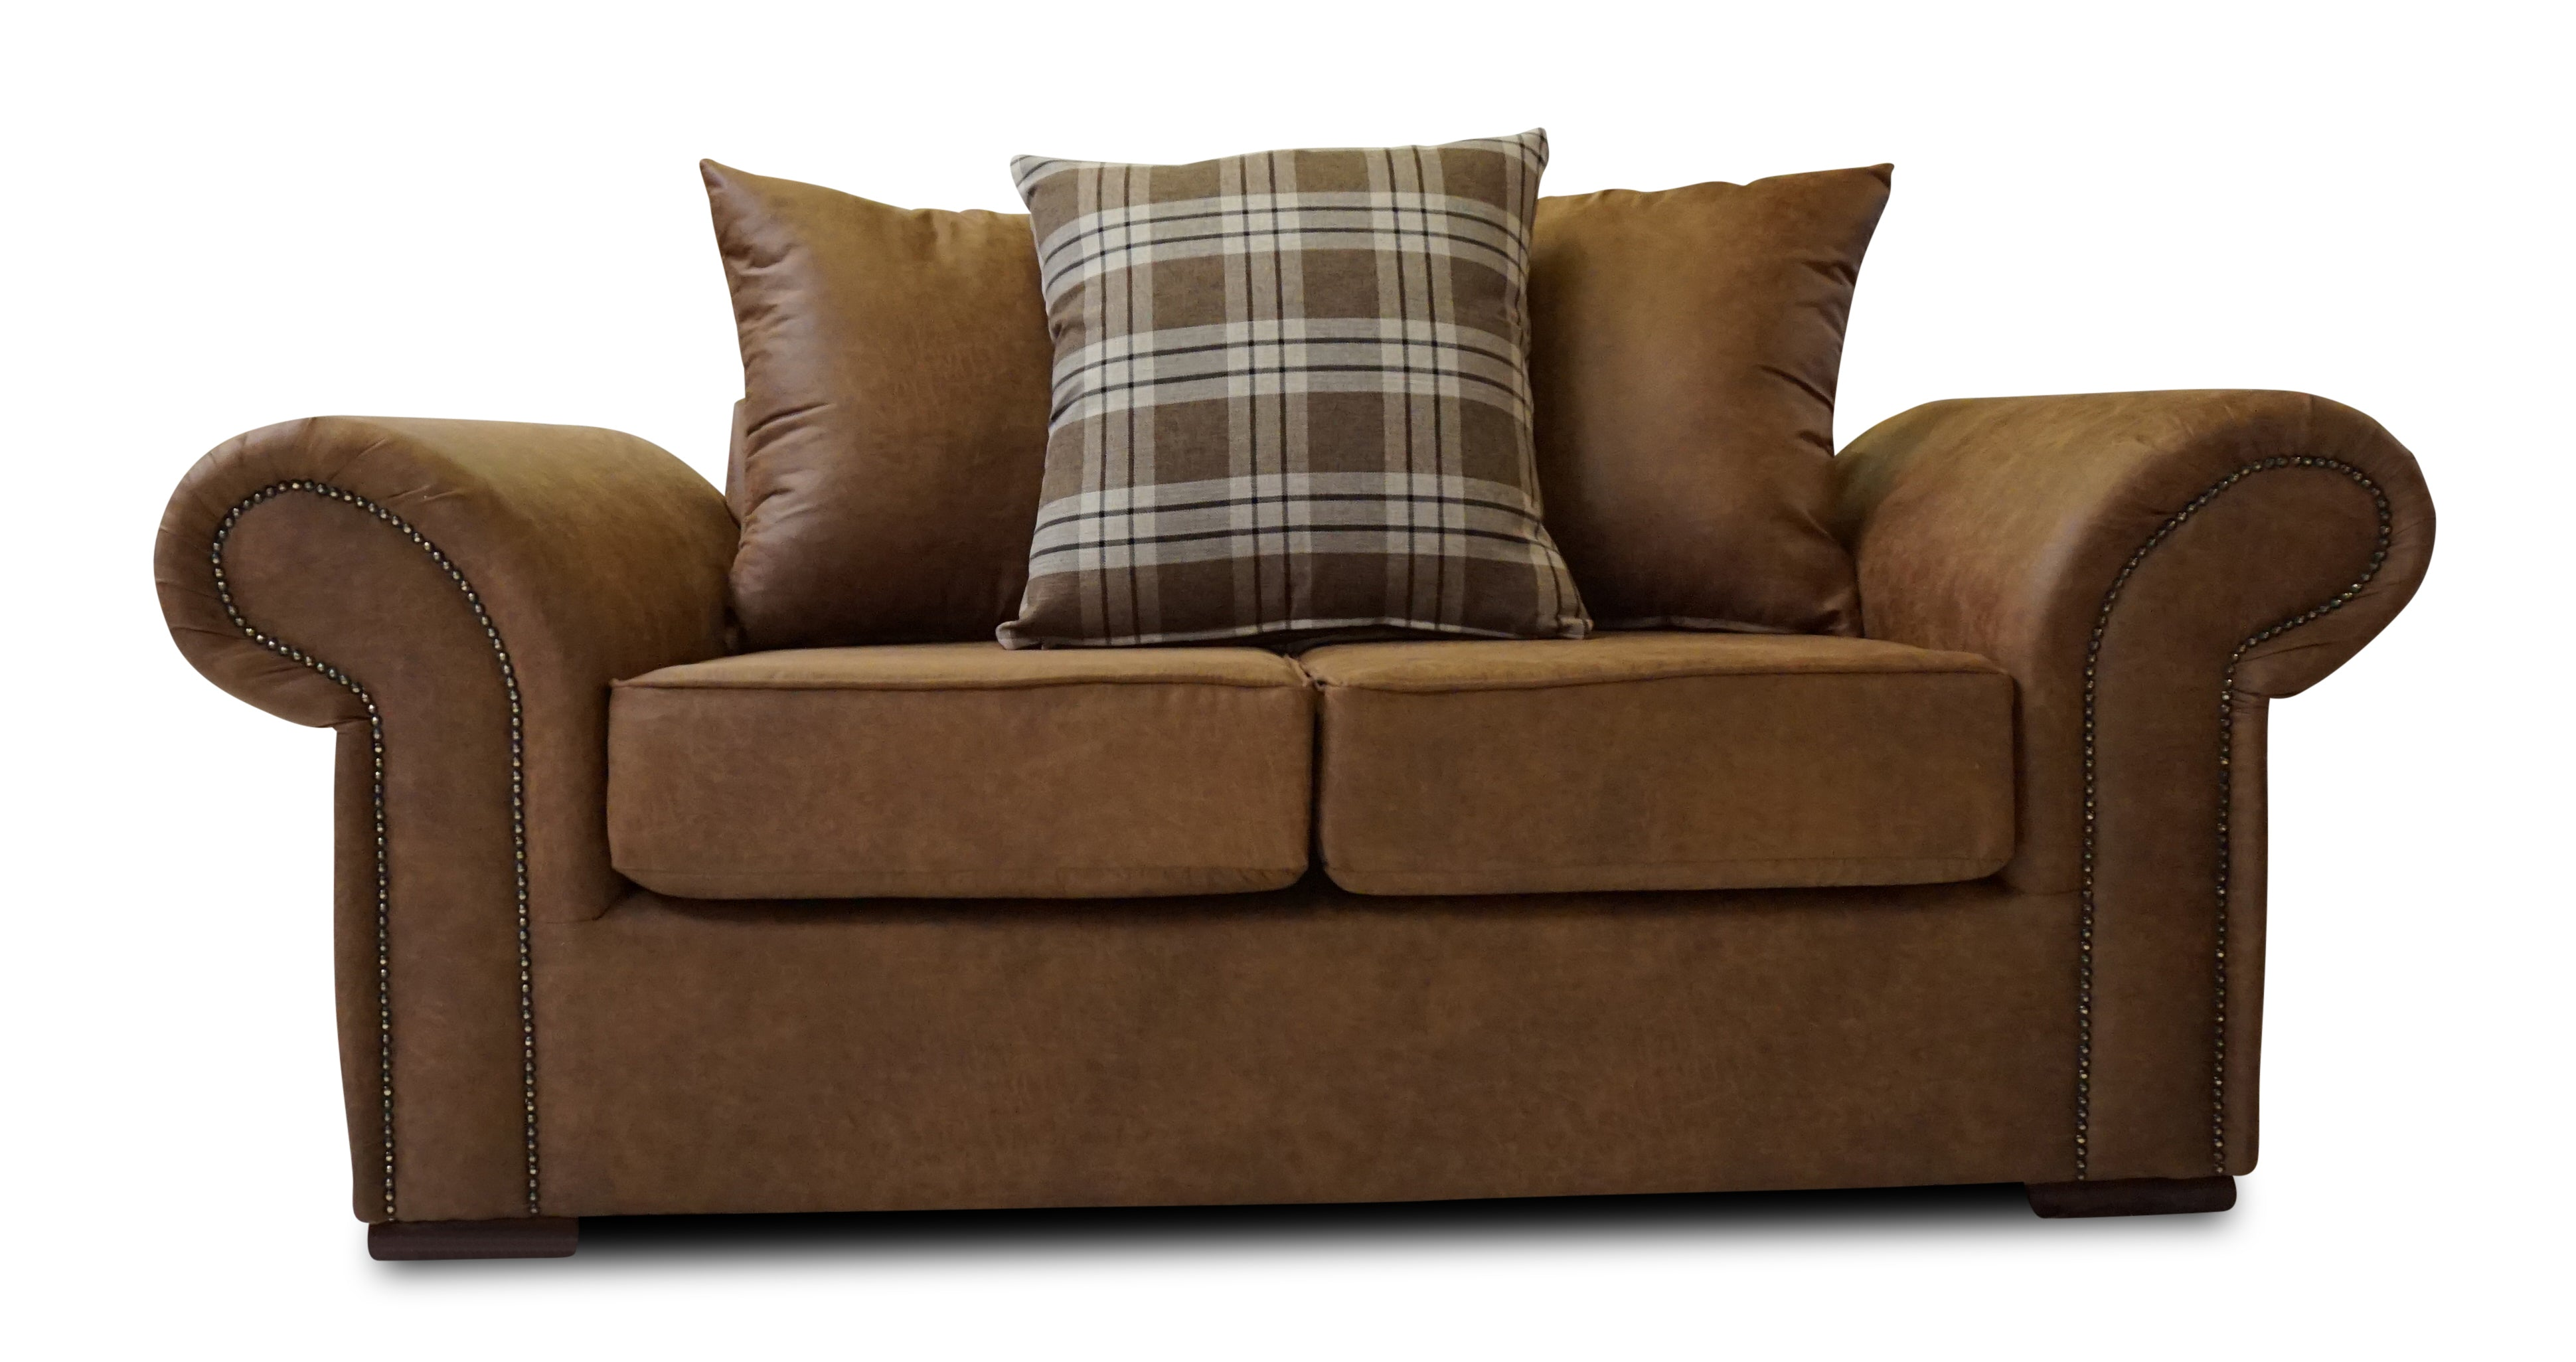 Fabric Sofas Near Armthorpe